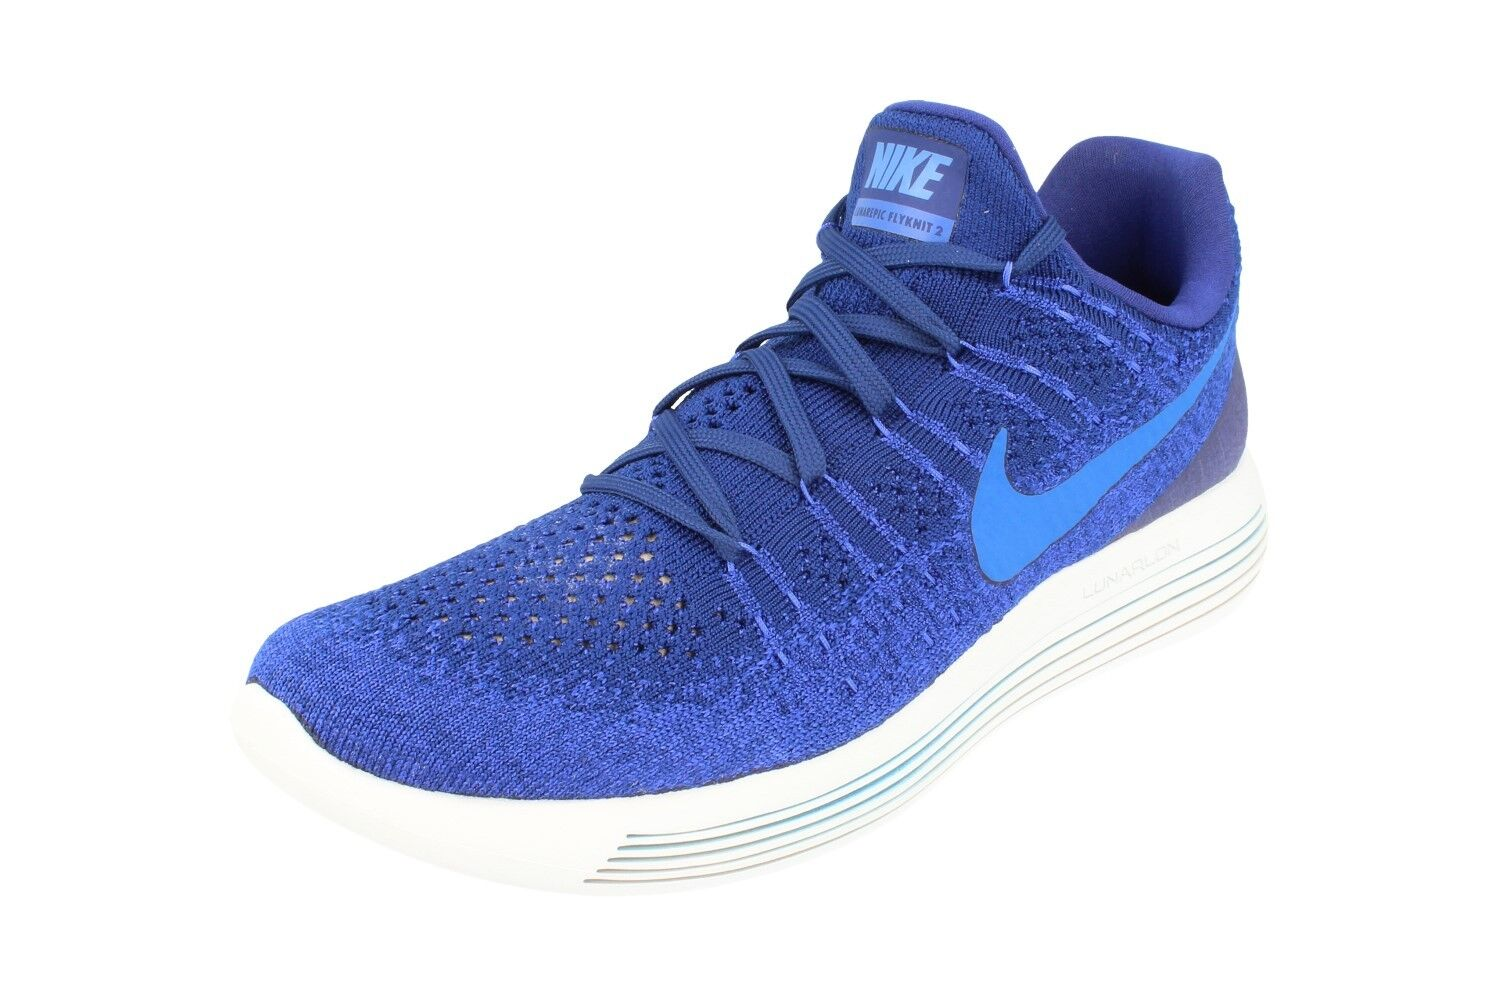 Nike Lunarepic Low Flyknit 2 Mens Running Trainers 863779 Sneakers shoes 400